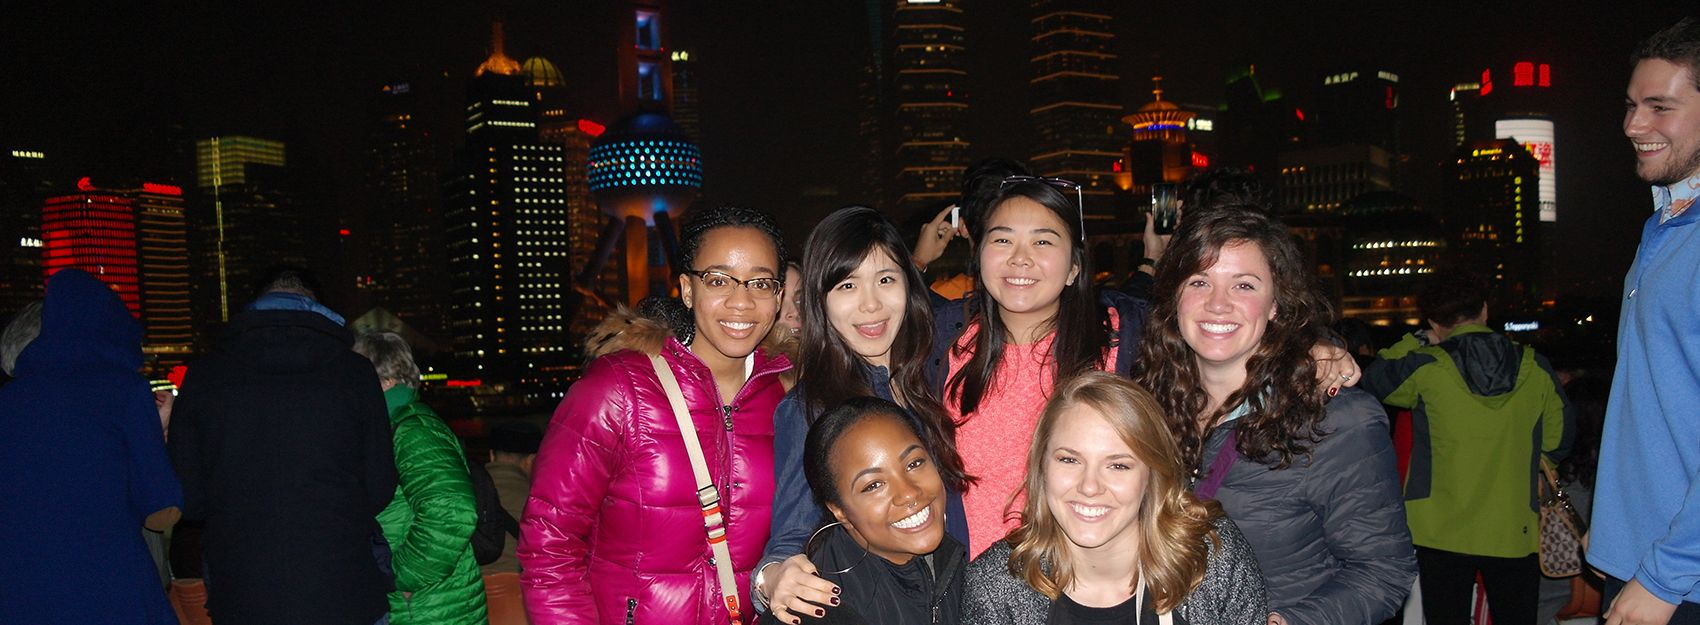 Students in front of Shanghai skyline